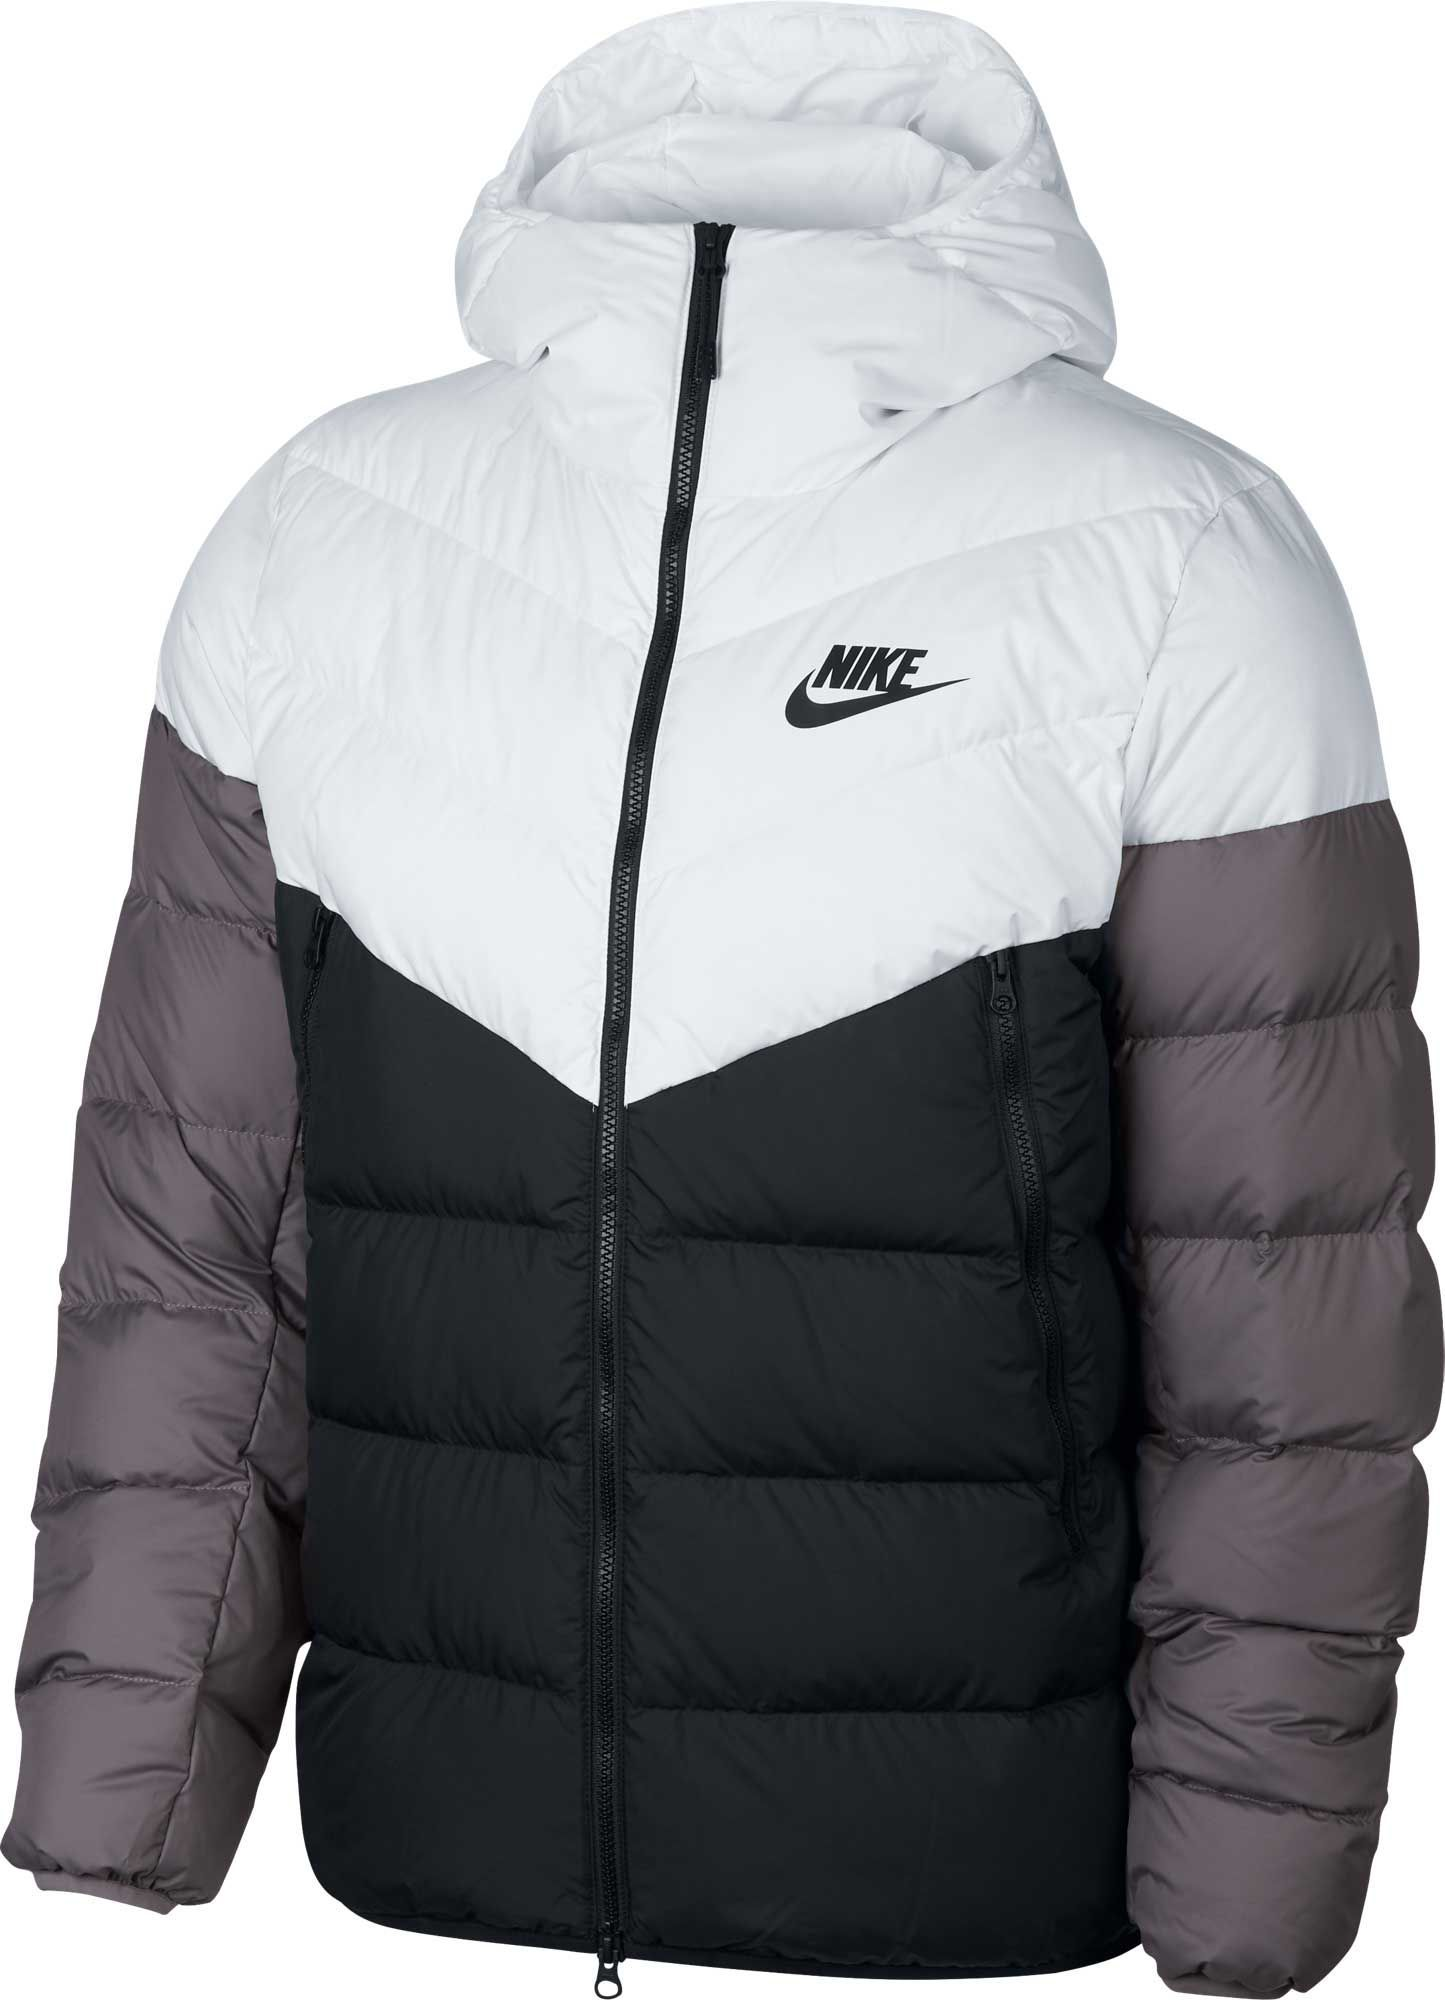 bcf00f6c1 Nike Men's Sportswear Windrunner Down Jacket in 2019 | Products ...